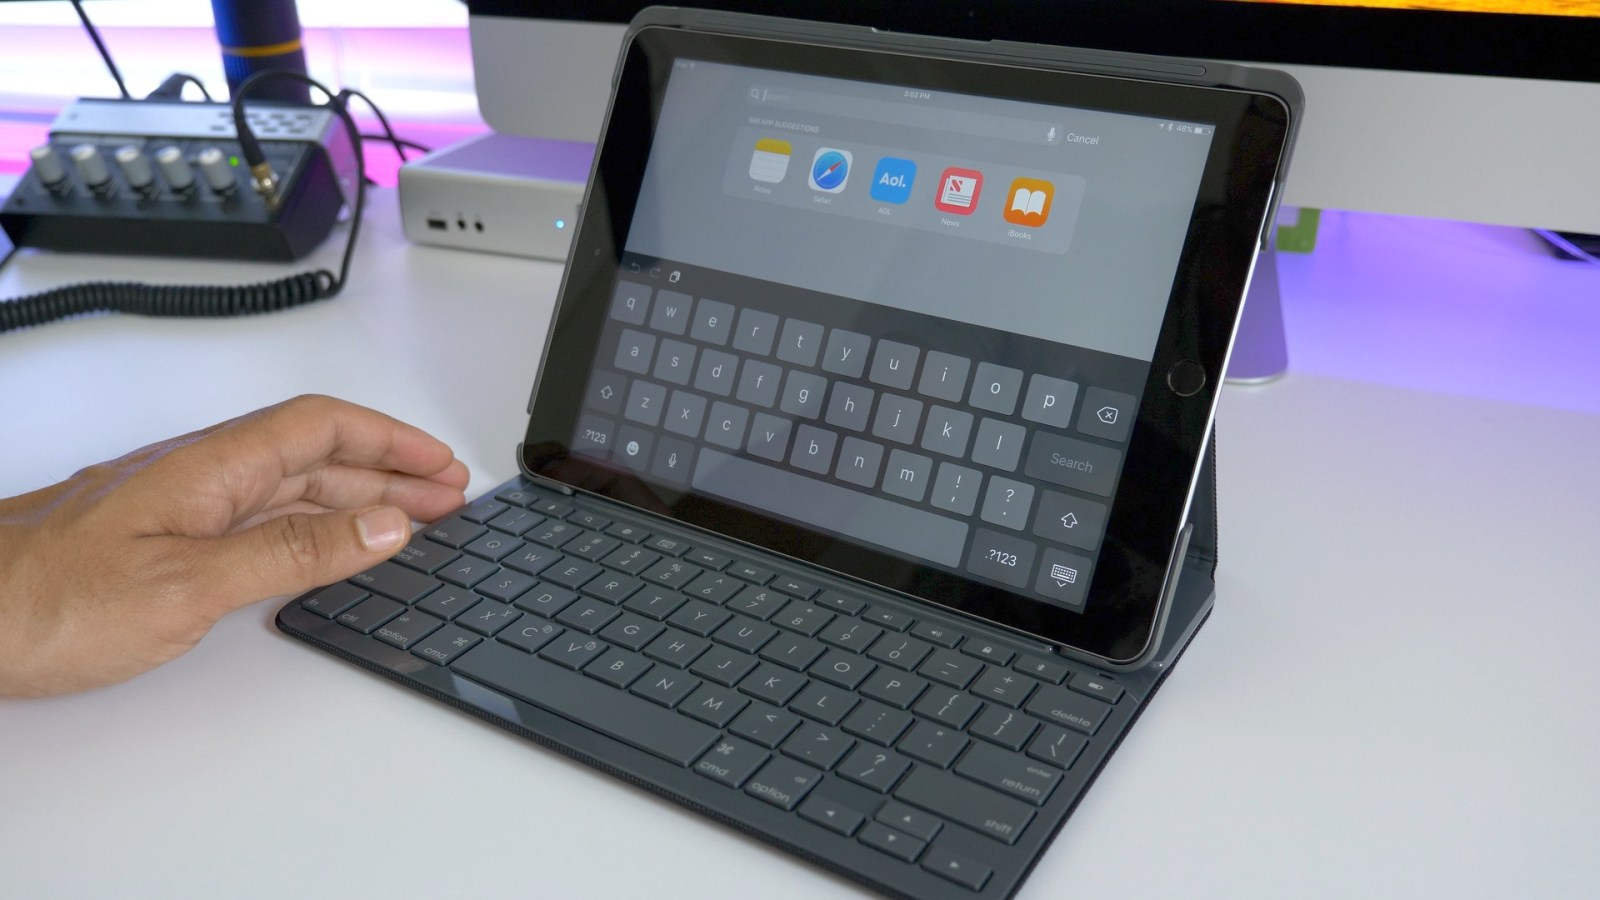 Hands-on: Logitech's Slim Folio keyboard case for 2017 iPad never needs to be recharged [Video]